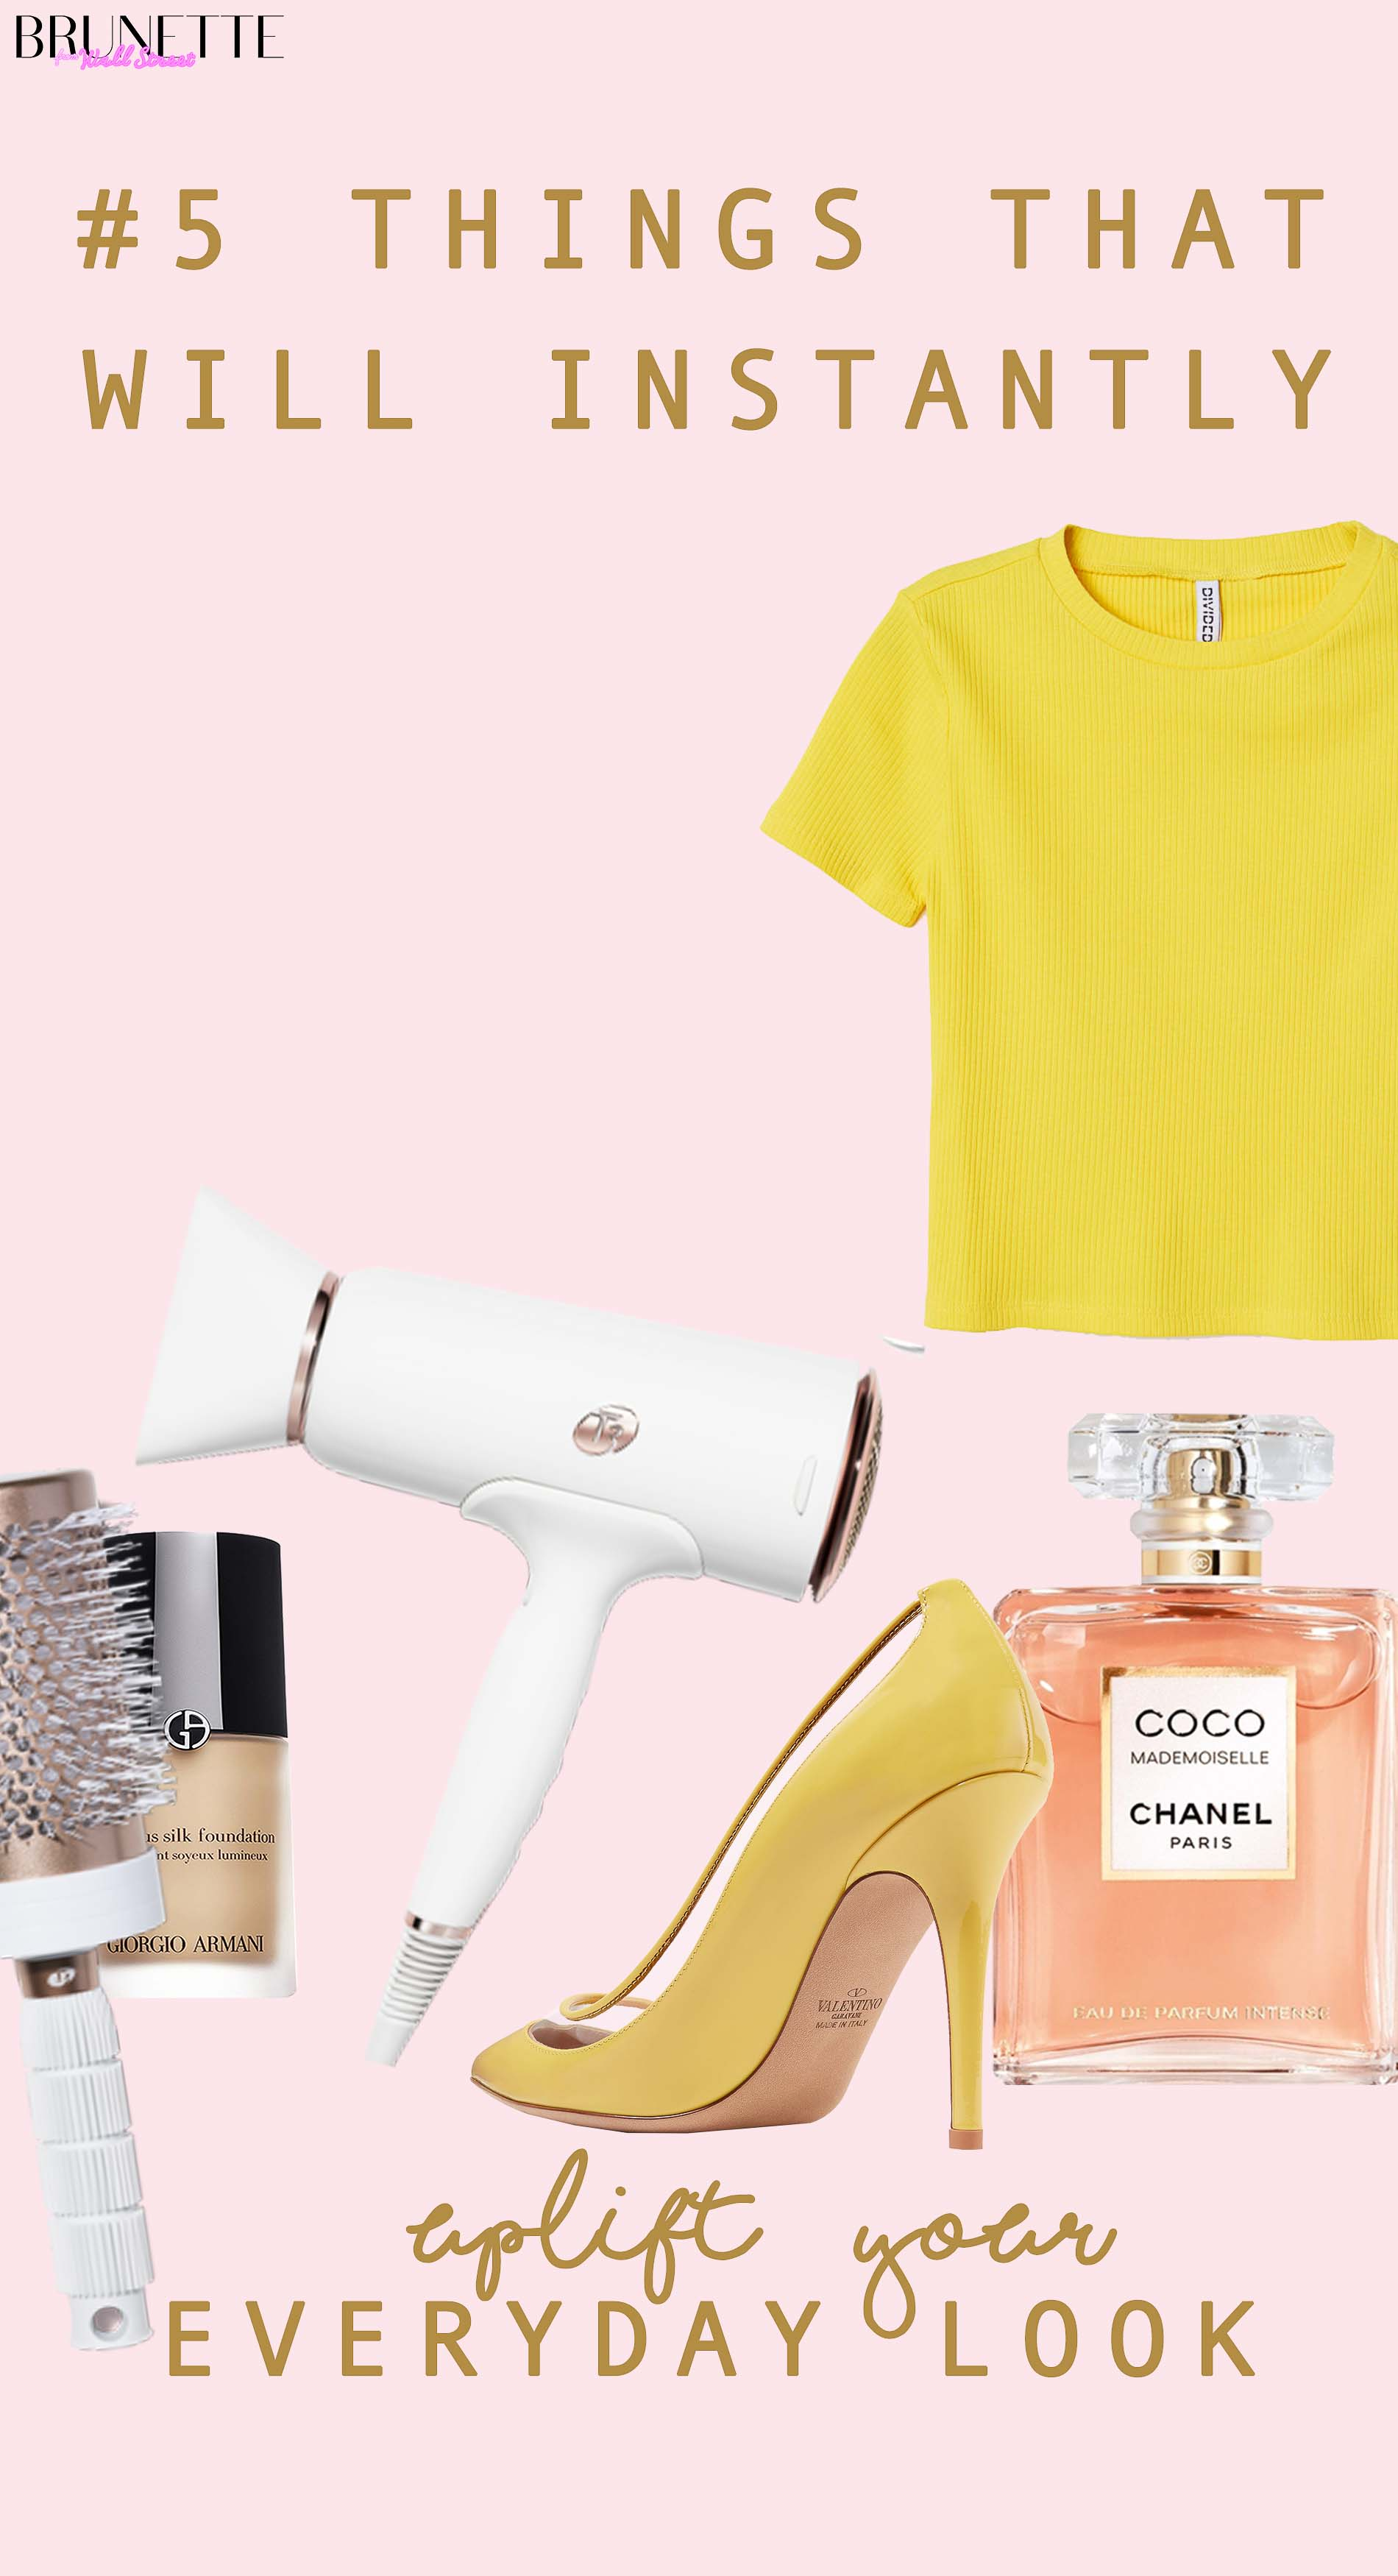 t3 hair dryer, t3 brush, Giorgio Armani foundation, yellow Valentino heels, yellow t-shirt, Chanel Coco Mademoisele perfume with text overlay #5 Things that will instantly uplift your everyday style